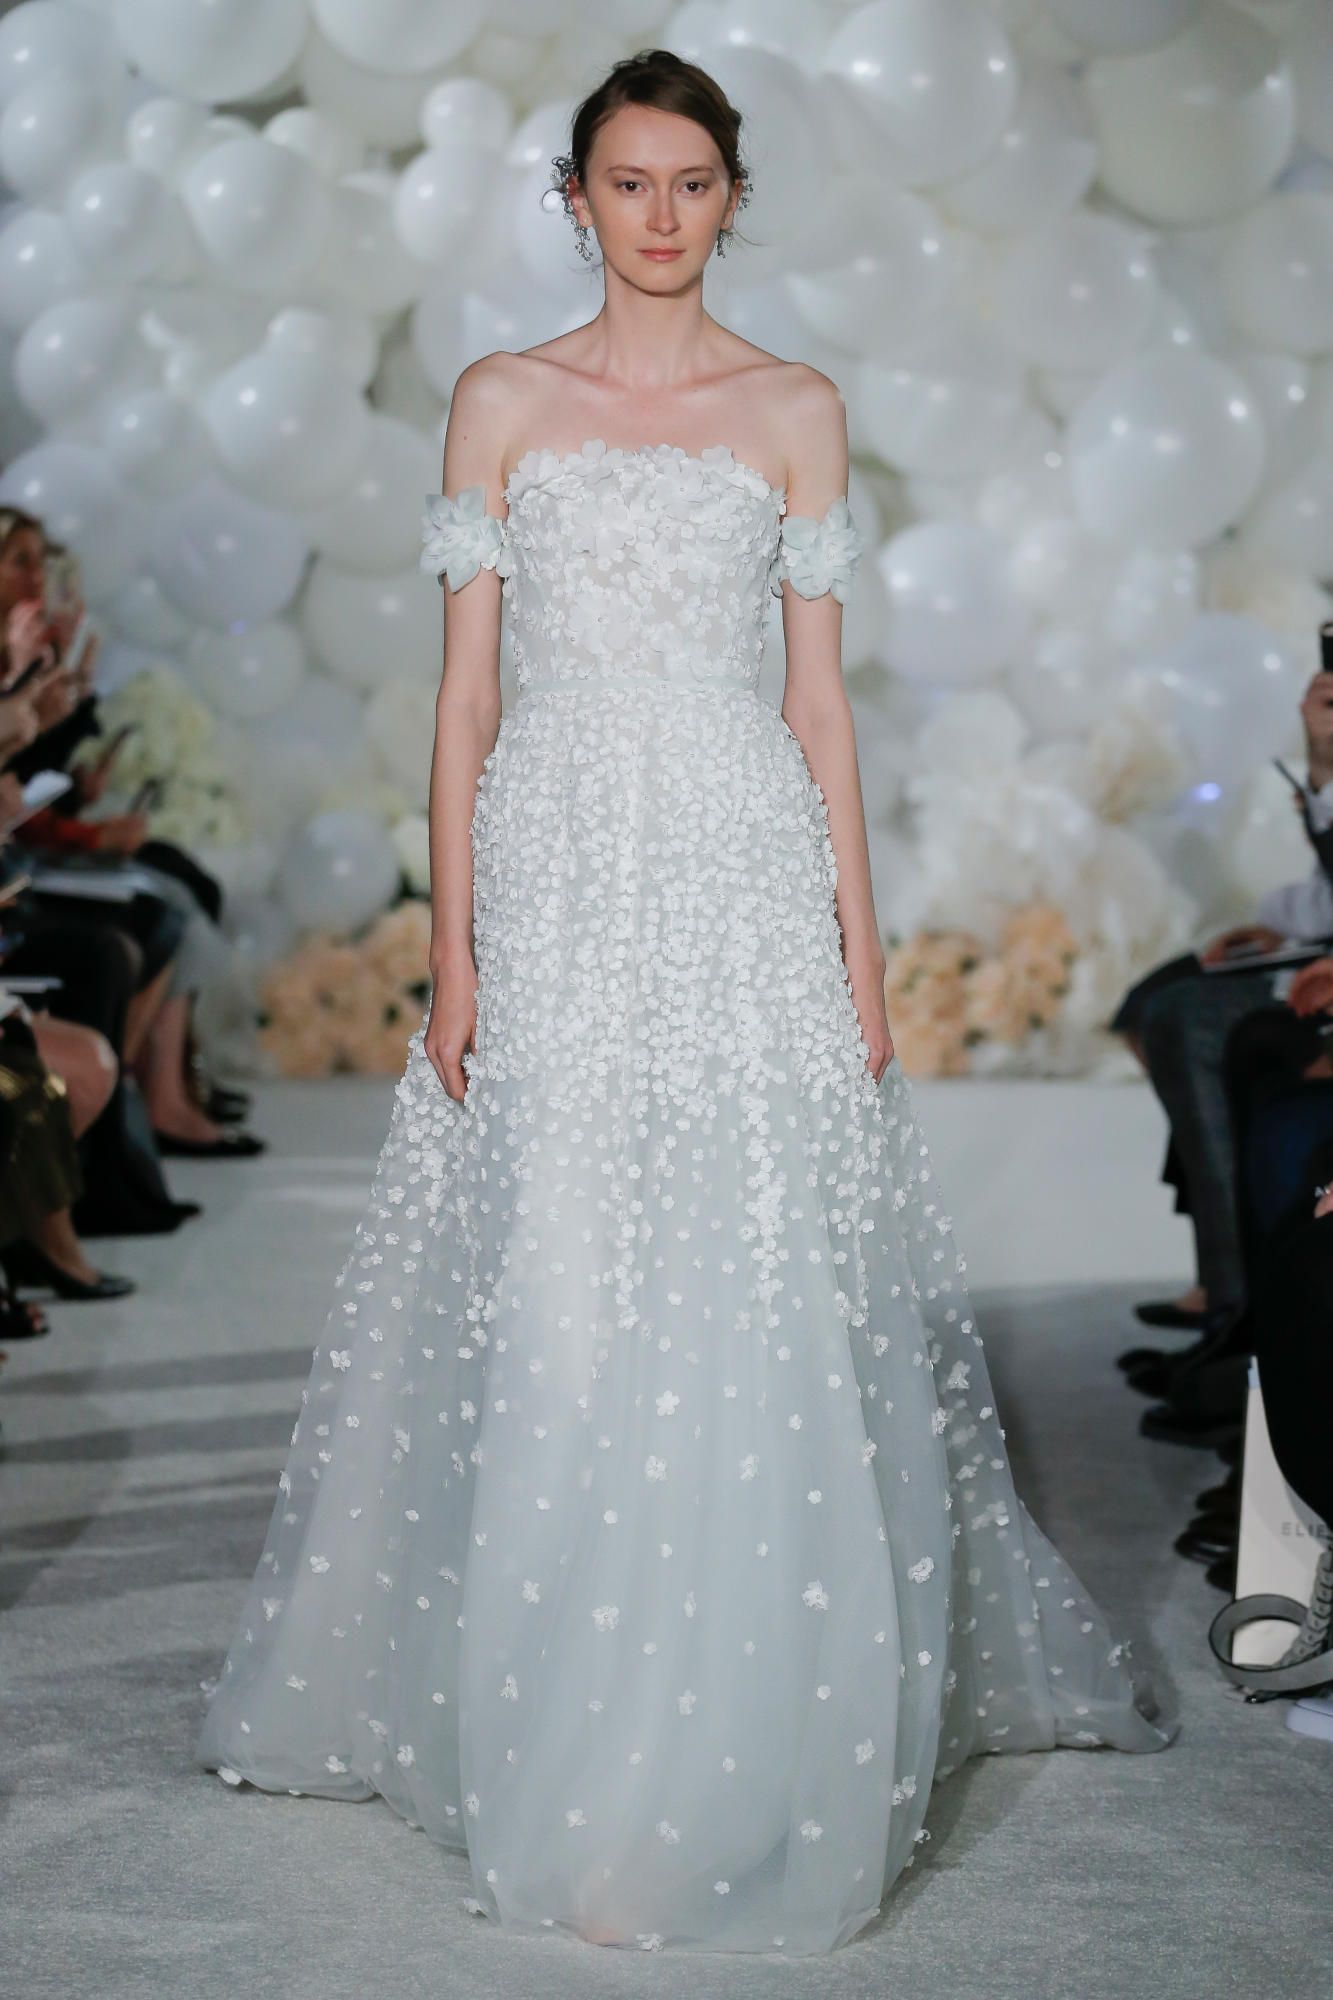 The Best Bridal Trends for Spring Are Surprisingly Timeless